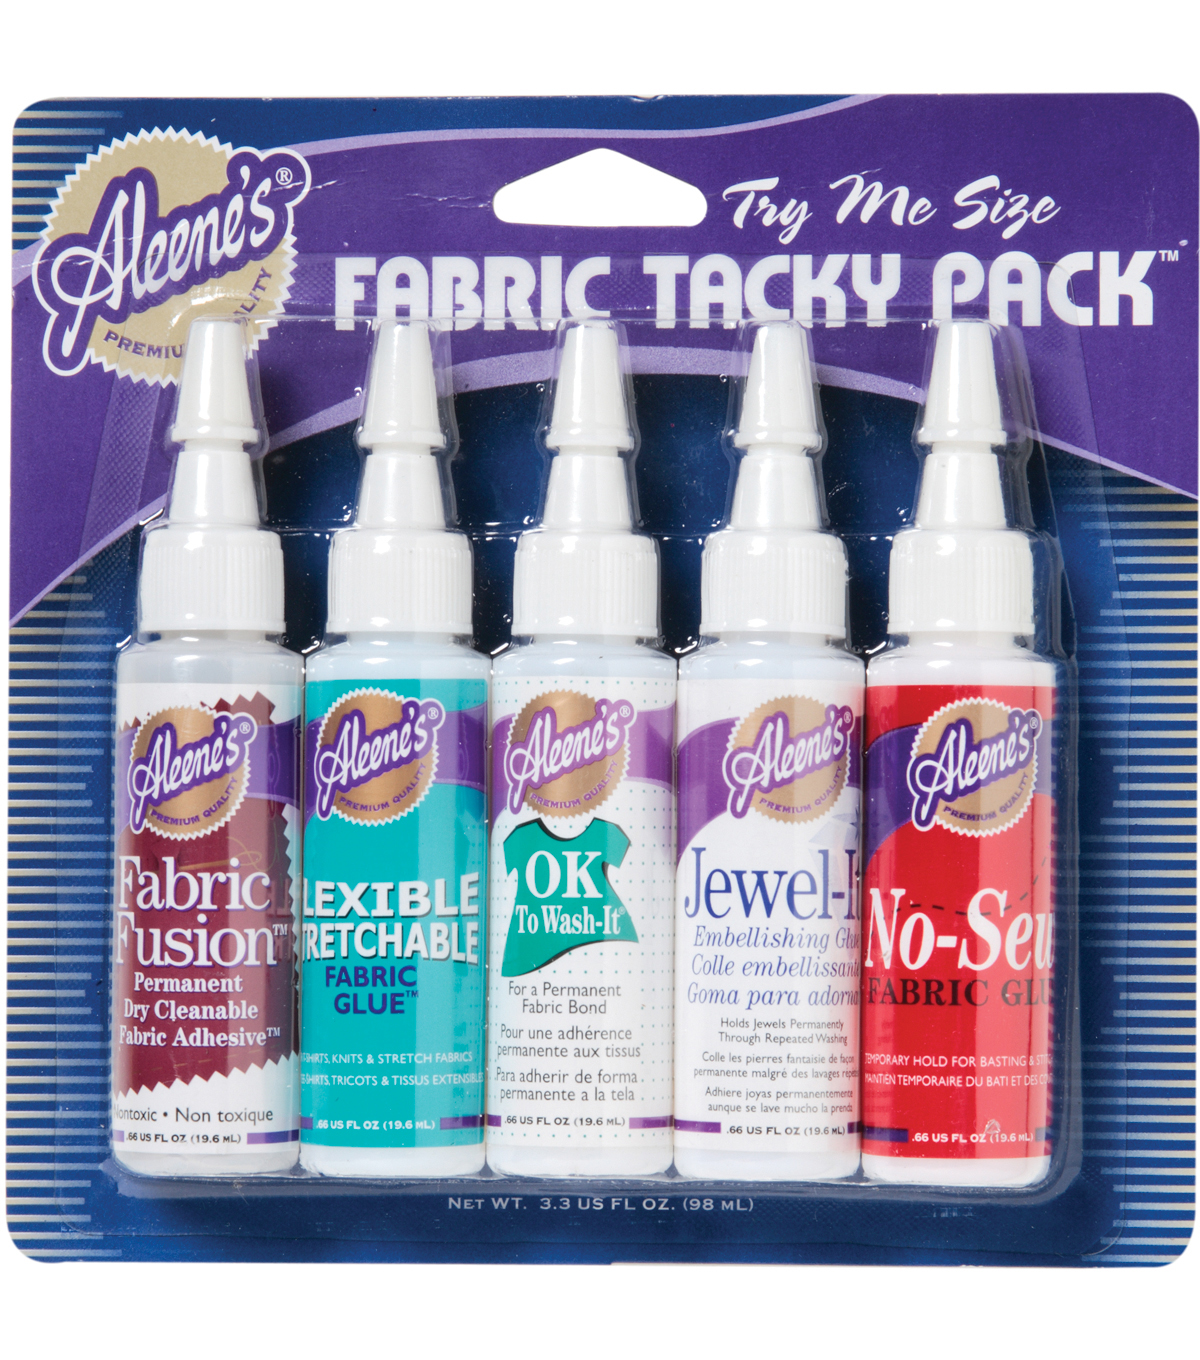 Aleene\u0027s 0.66 fl oz Try Me Size Fabric Tacky Pack